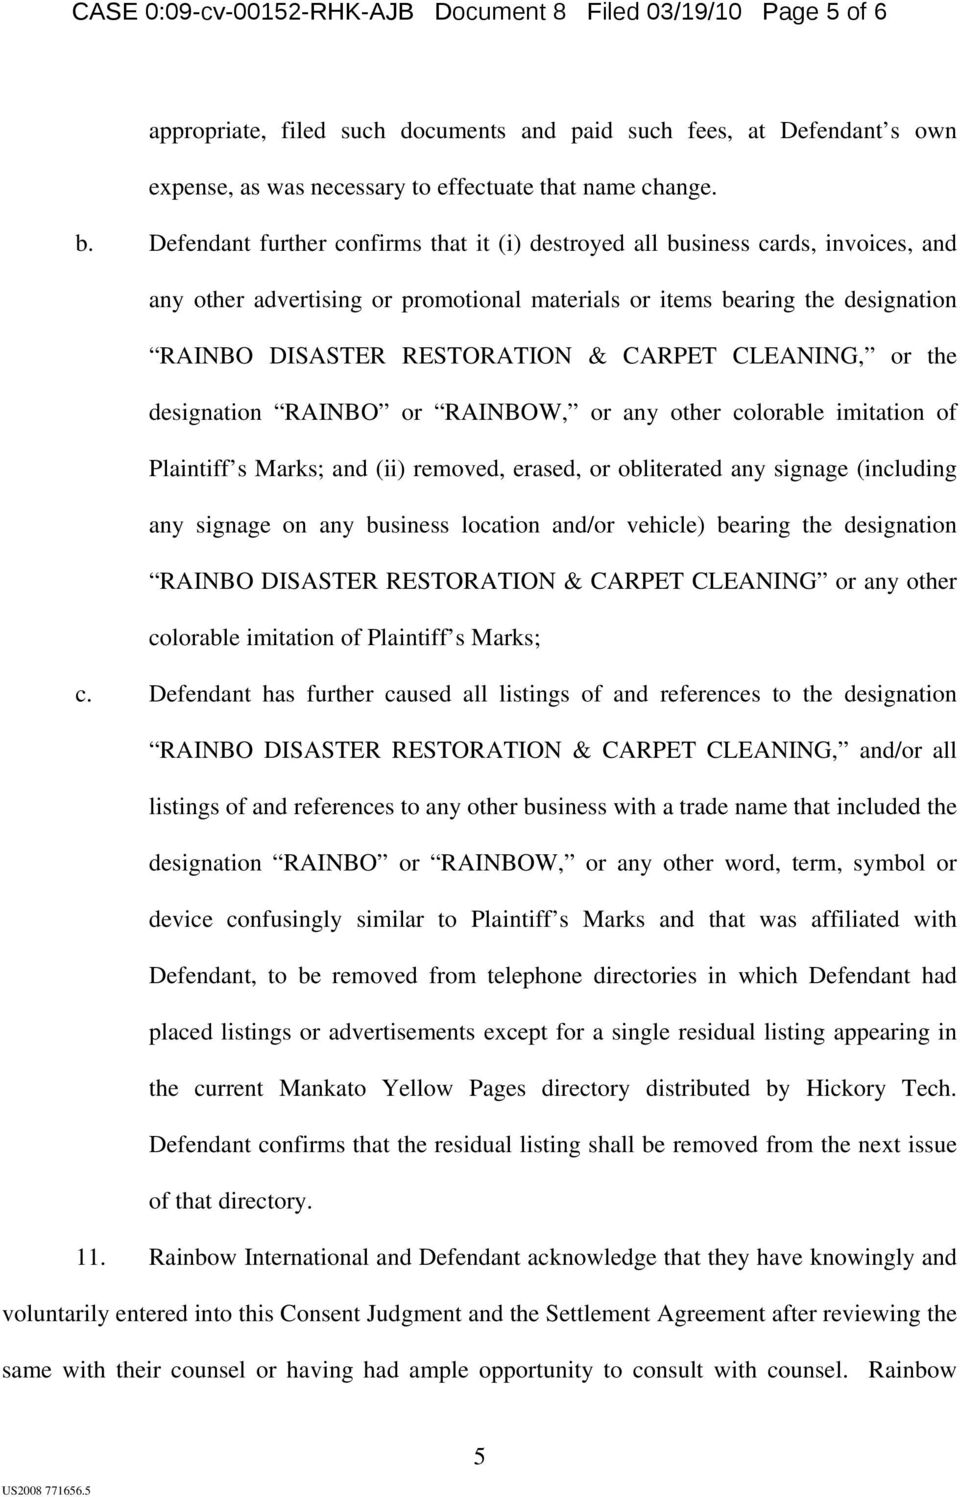 CLEANING, or the designation RAINBO or RAINBOW, or any other colorable imitation of Plaintiff s Marks; and (ii) removed, erased, or obliterated any signage (including any signage on any business